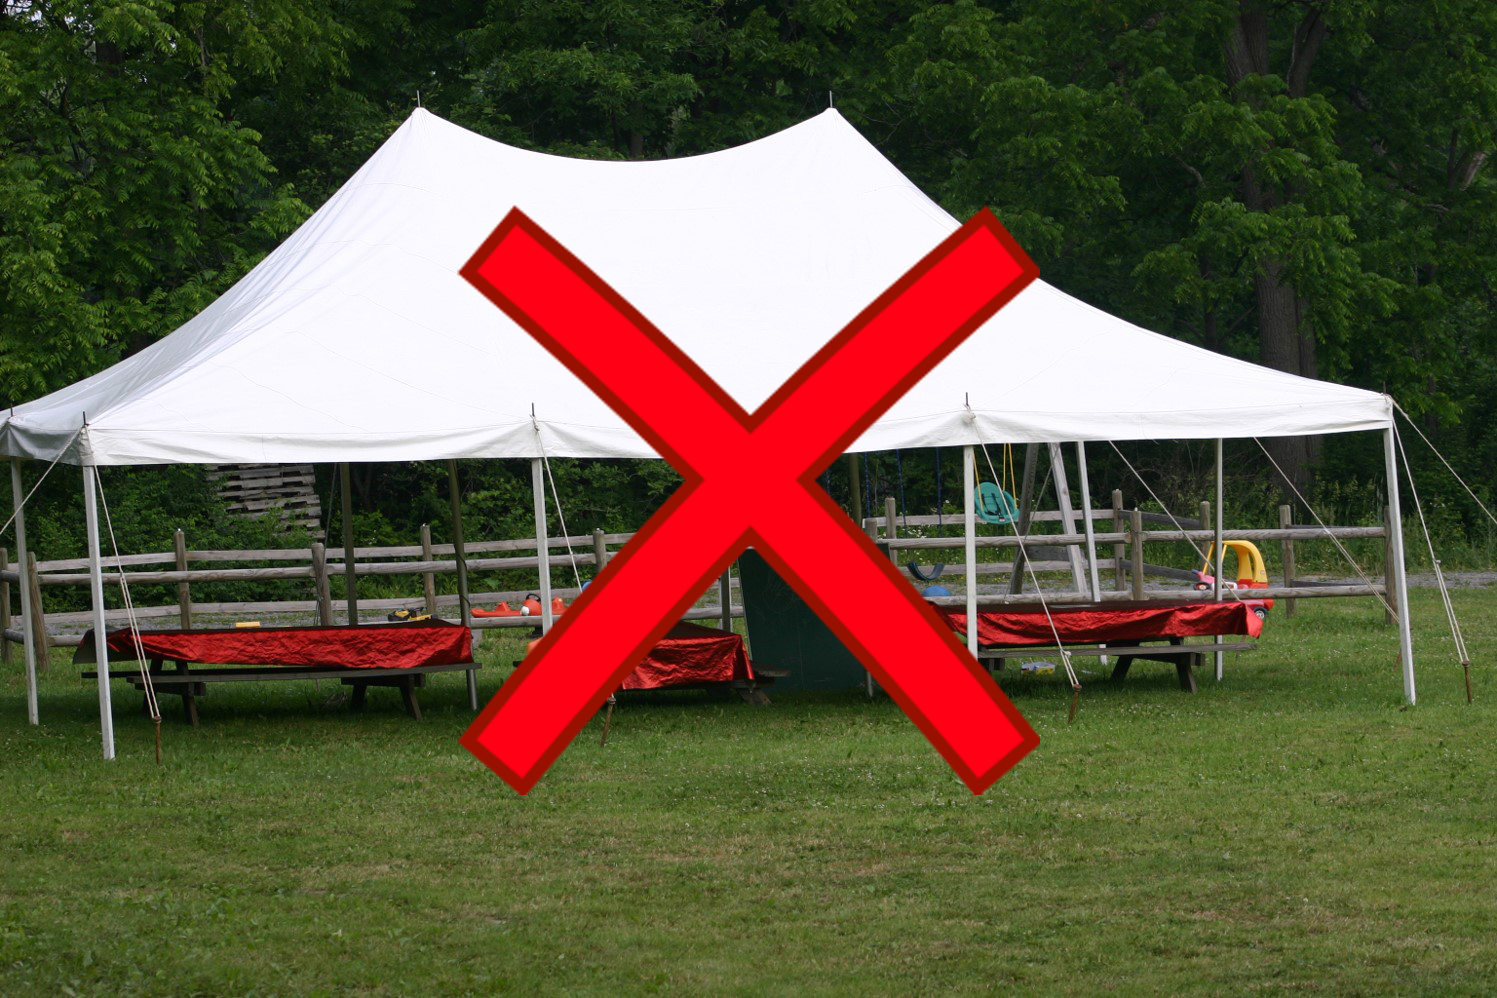 Picnic tables under tent with red x through image